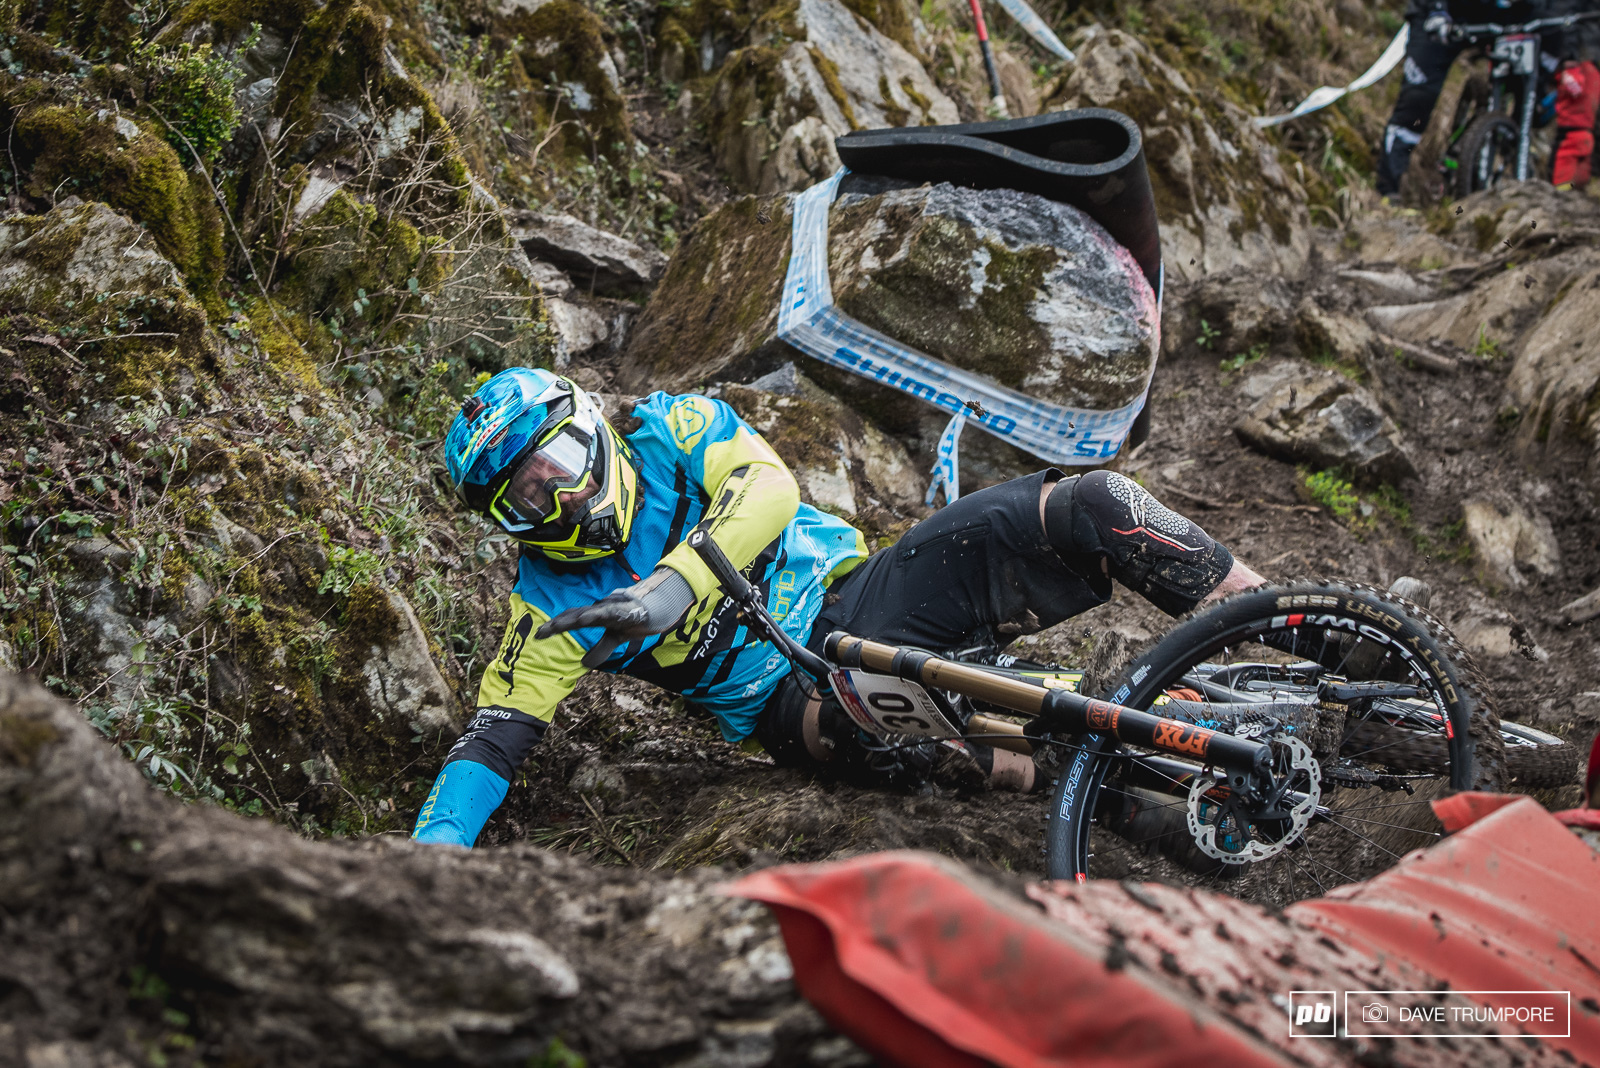 Wynn Masters had a bit of a rough on today while nursing an injured wrist down a slick and rowdy track in Lourdes.